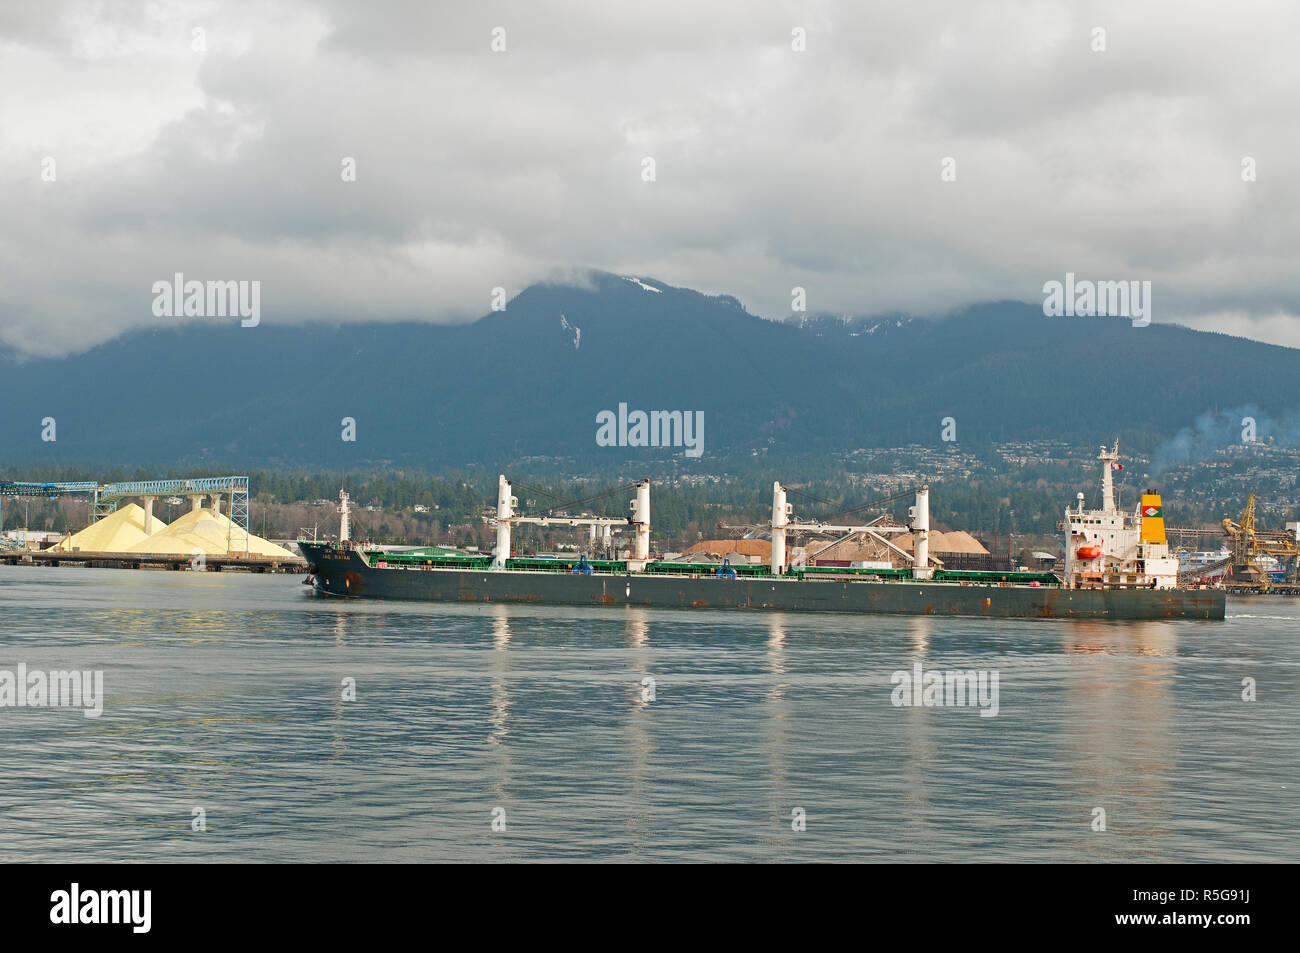 The Bulk Carrier vessel in the process of departing from Vancouver in British Columbia. Stock Photo